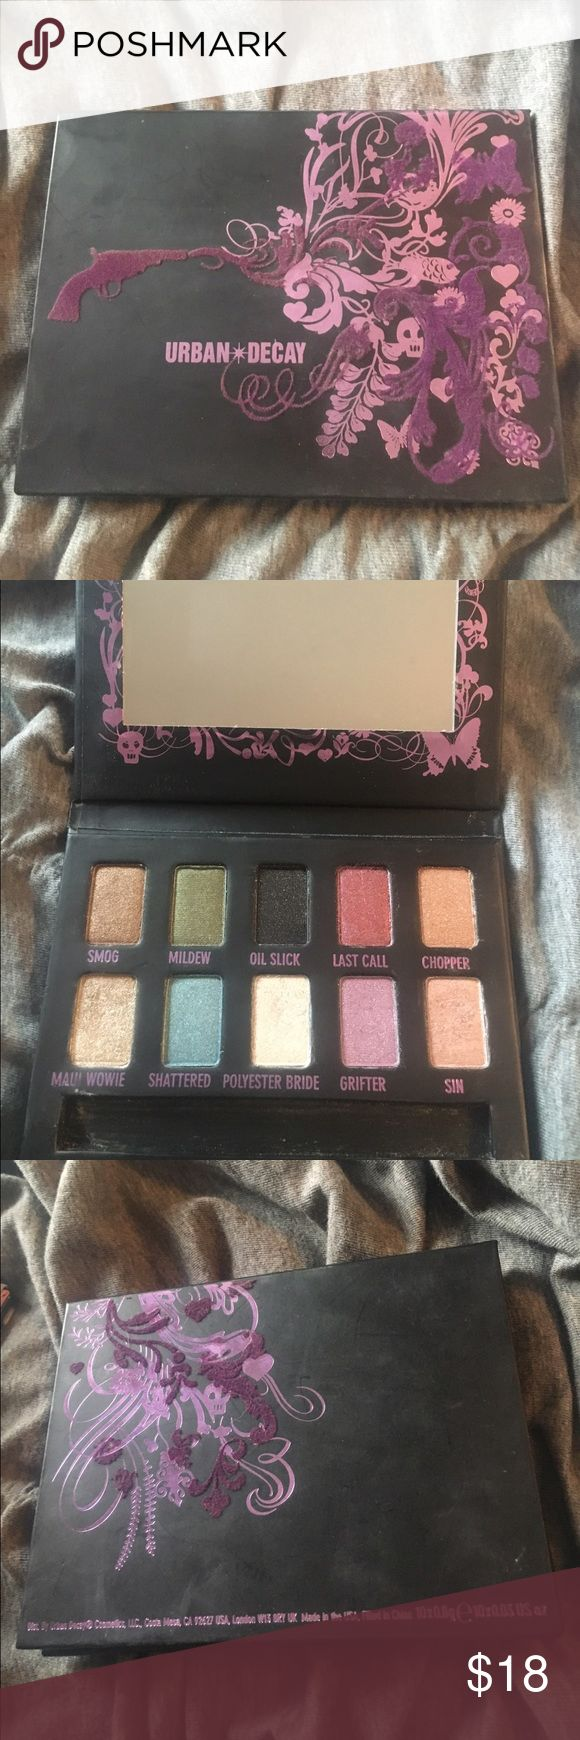 Urban Decay Ammo Shadow Palette Very lightly used palette. No trades. Urban Decay Makeup Eyeshadow